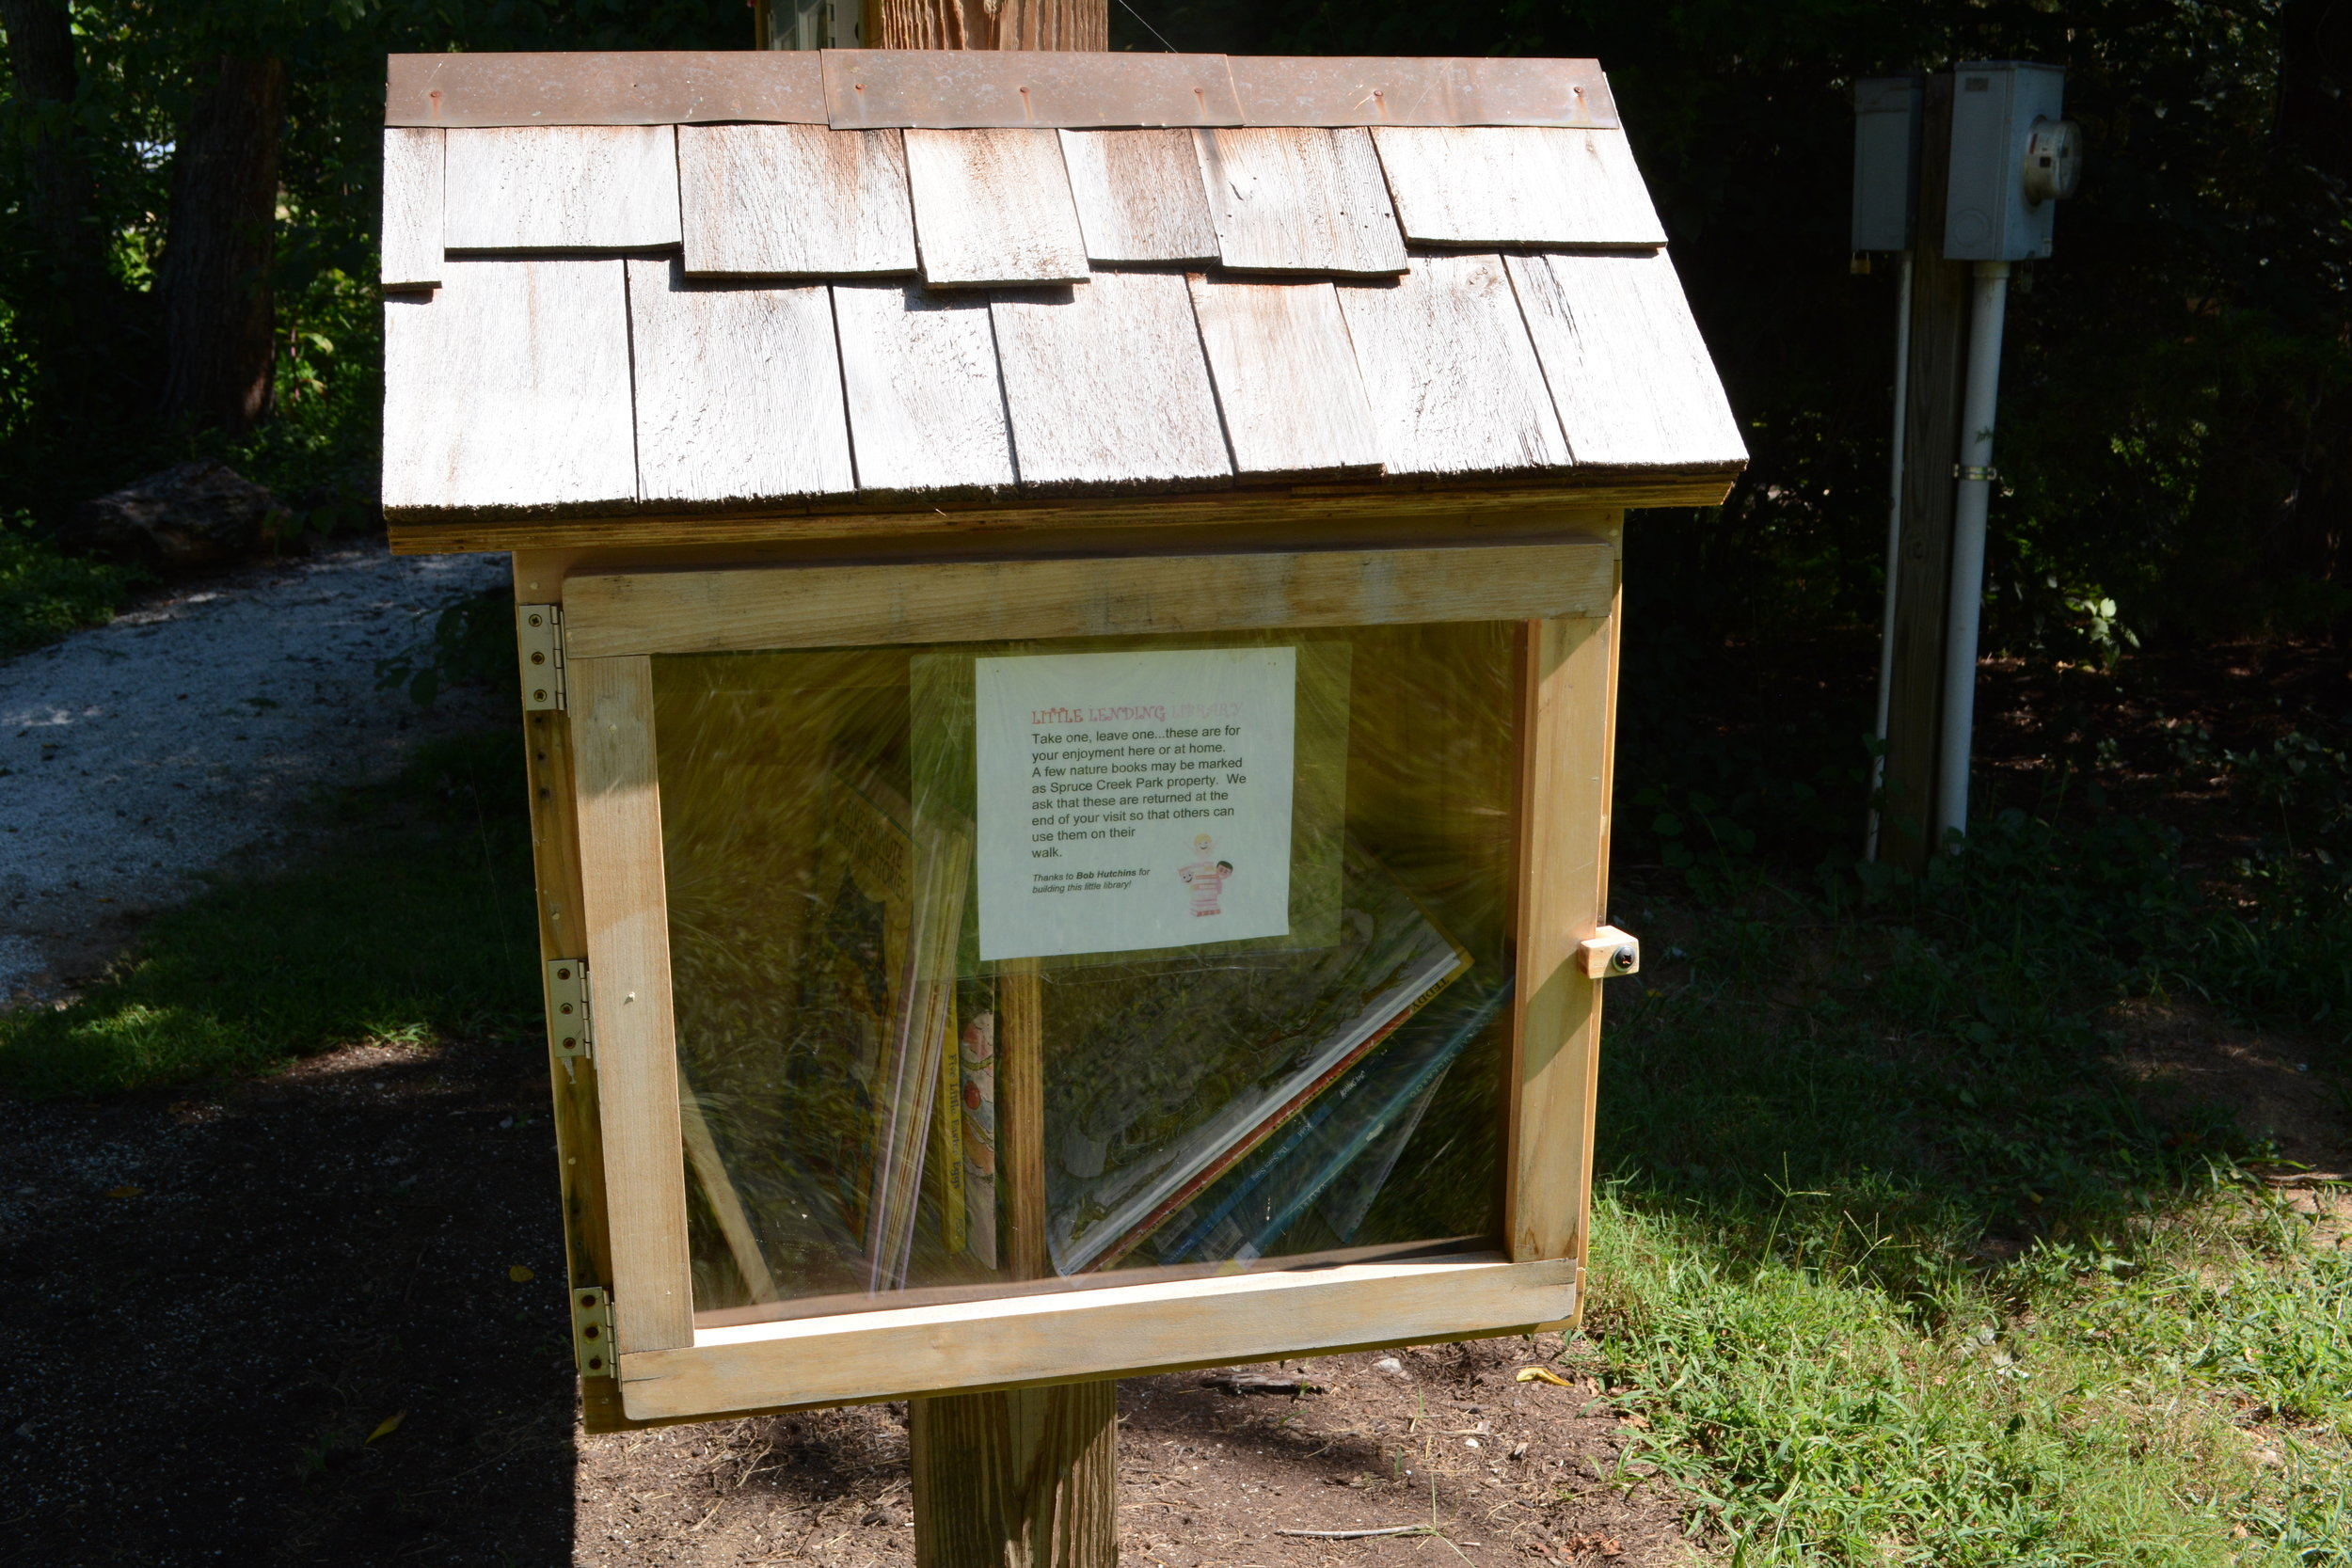 The park's take-a-book, give-a-book outdoor children's library is working well.